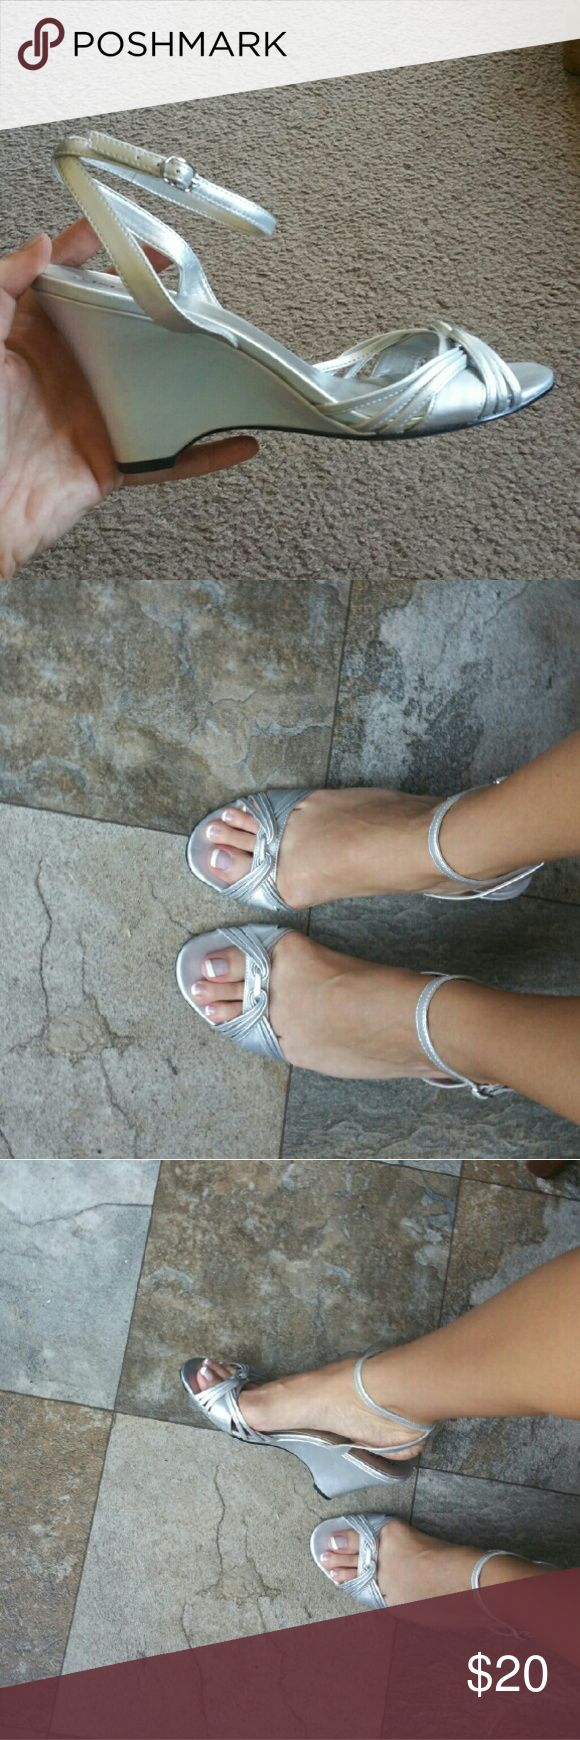 Shoes Only worn once to a wedding! Great condition. Silver wedge dress heel. East 5th Shoes Wedges